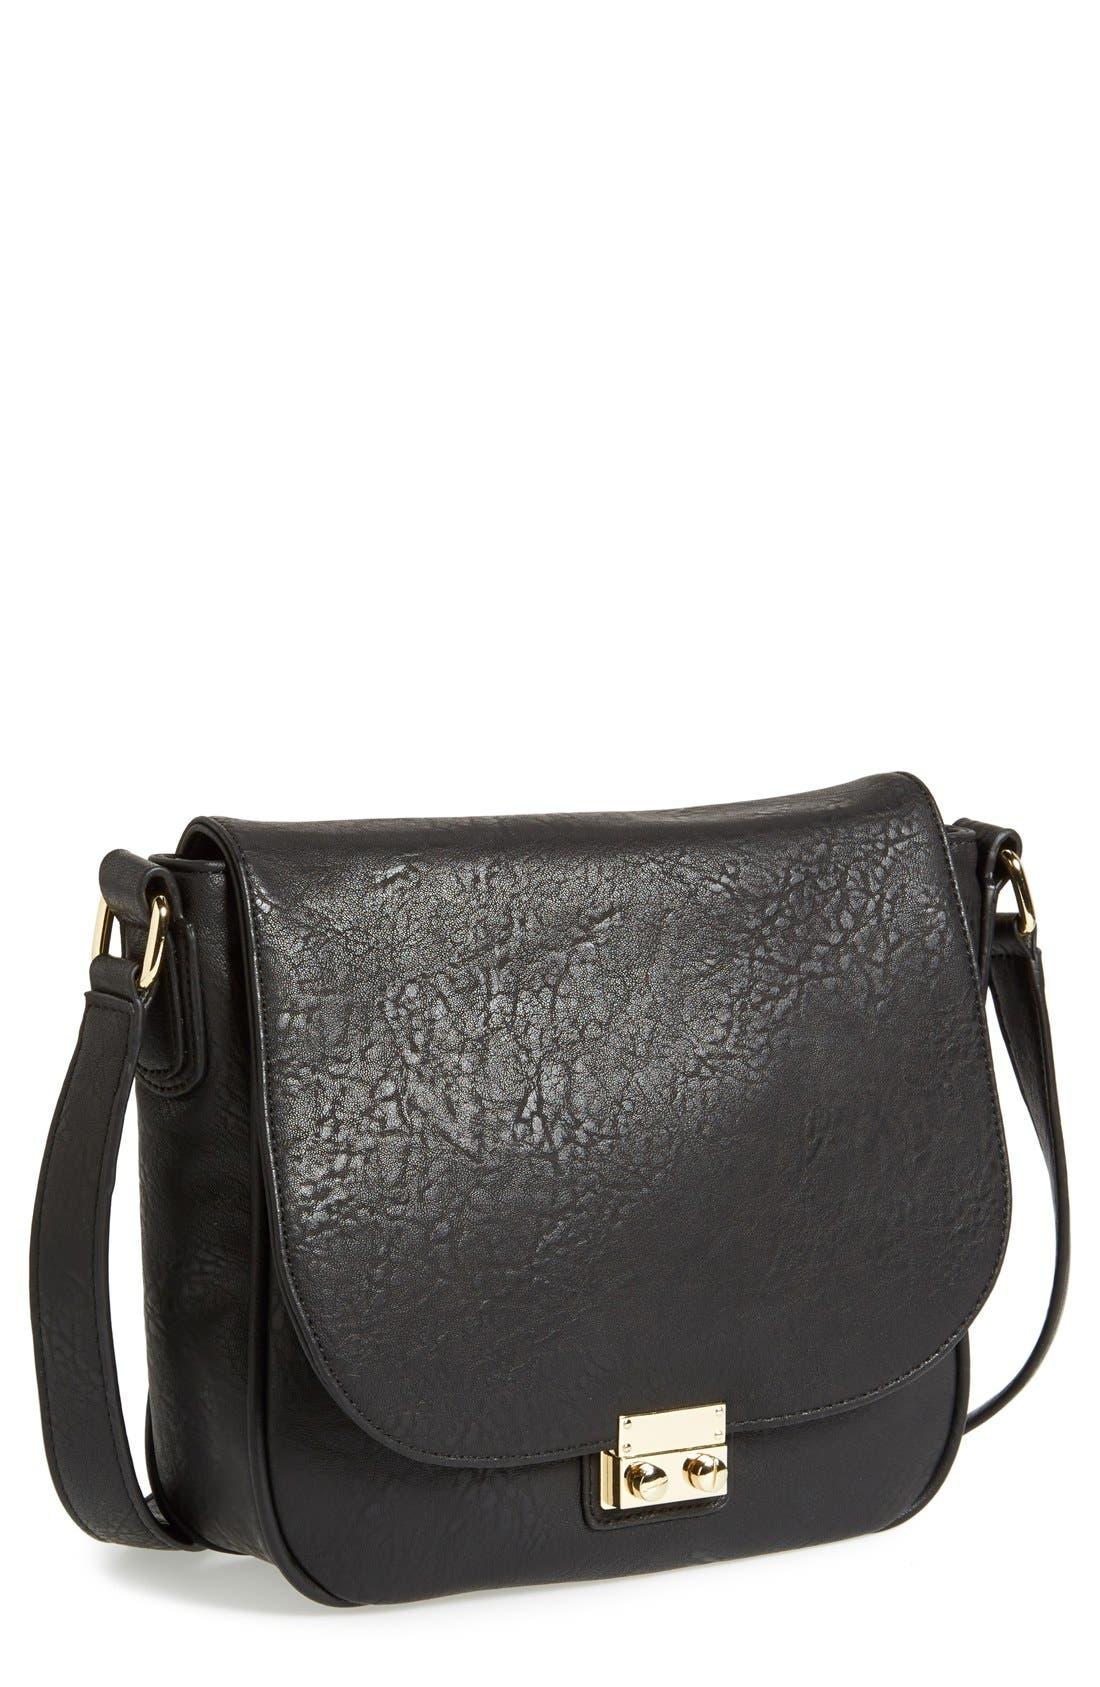 Alternate Image 1 Selected - Sole Society 'Sequoia' Faux Leather Saddle Bag